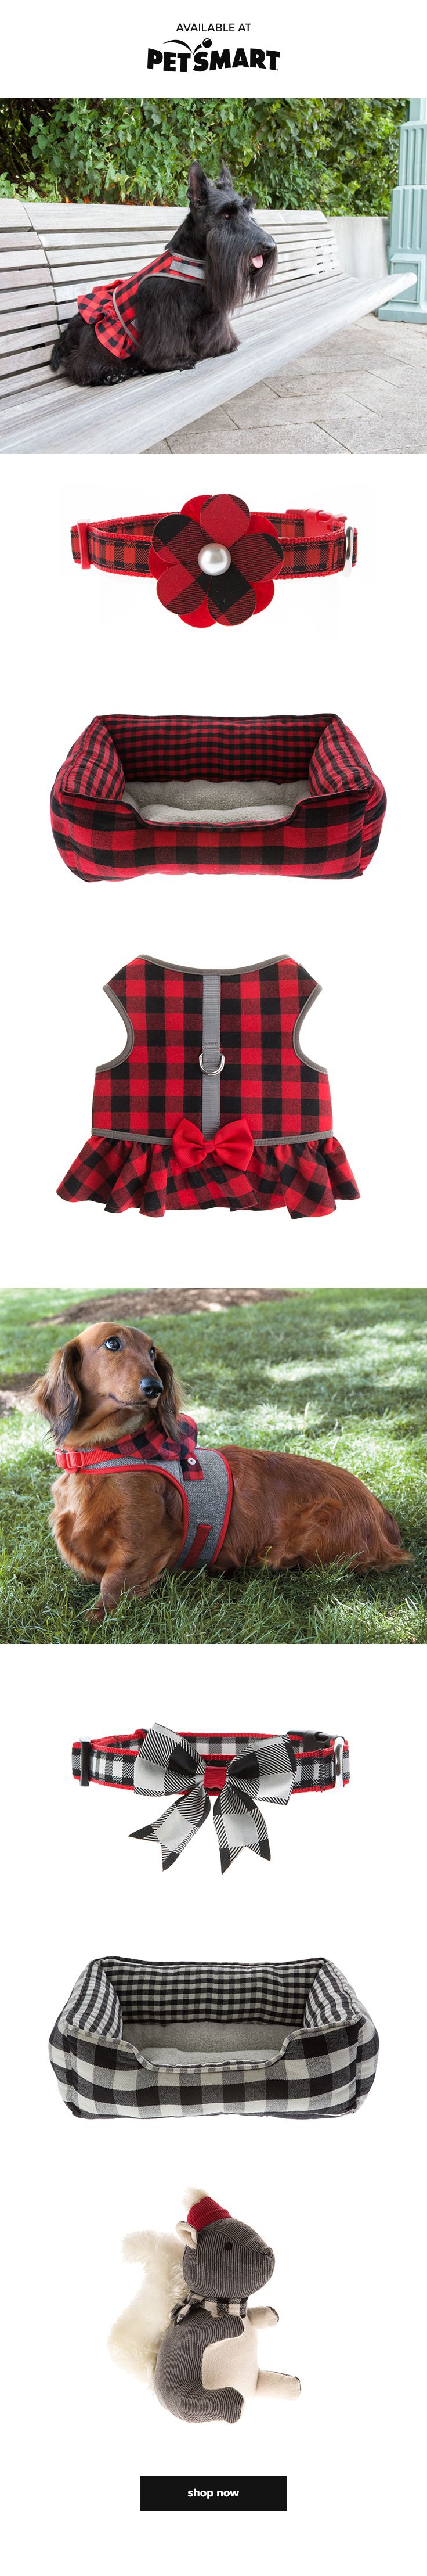 Flannel is all the rage this fall. Shop Martha Stewart Pets collars, toys, beds and dog apparel, available only at PetSmart!